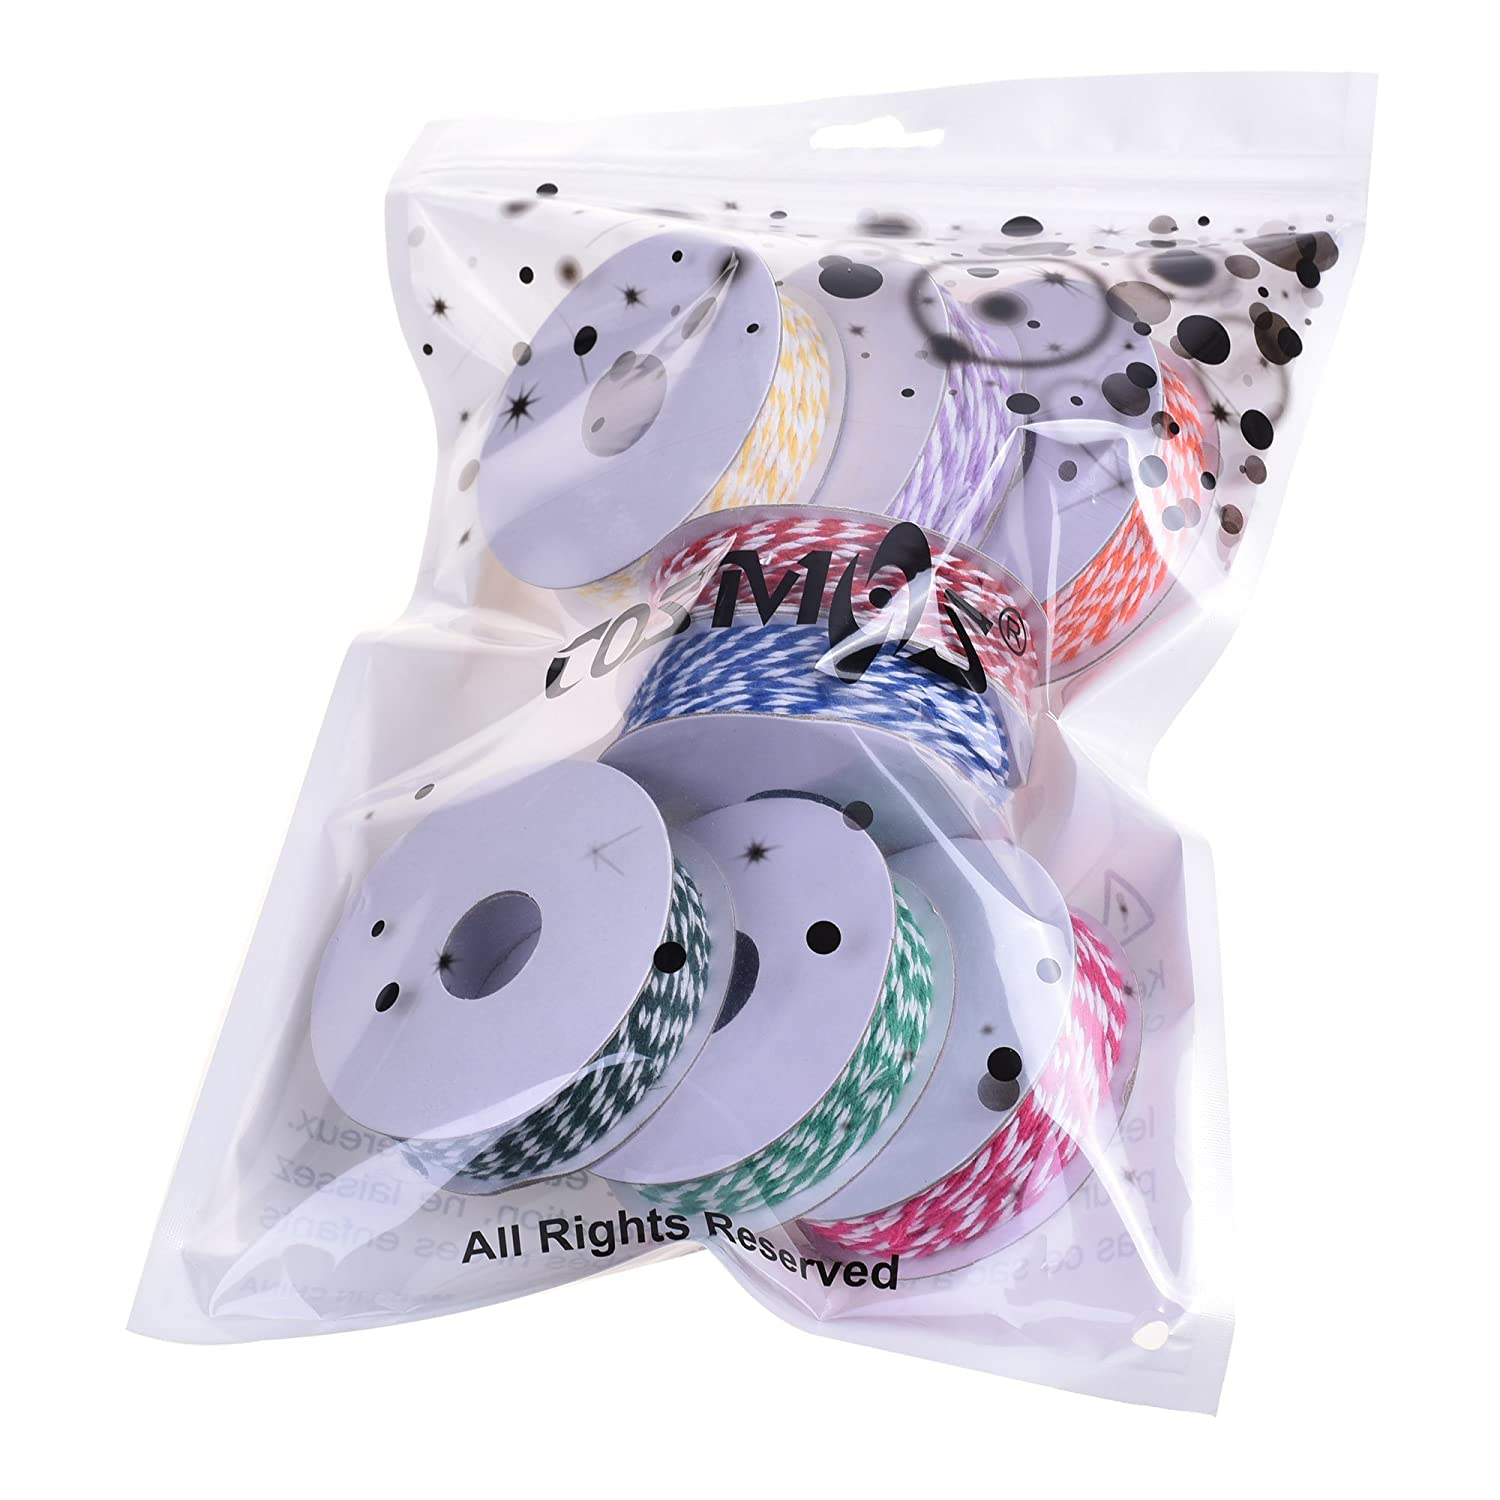 8 Pieces in Assorted Colors CM Cosmos 20 Yards Colorful Cotton Twine Cord for DIY Crafts Making Decoration